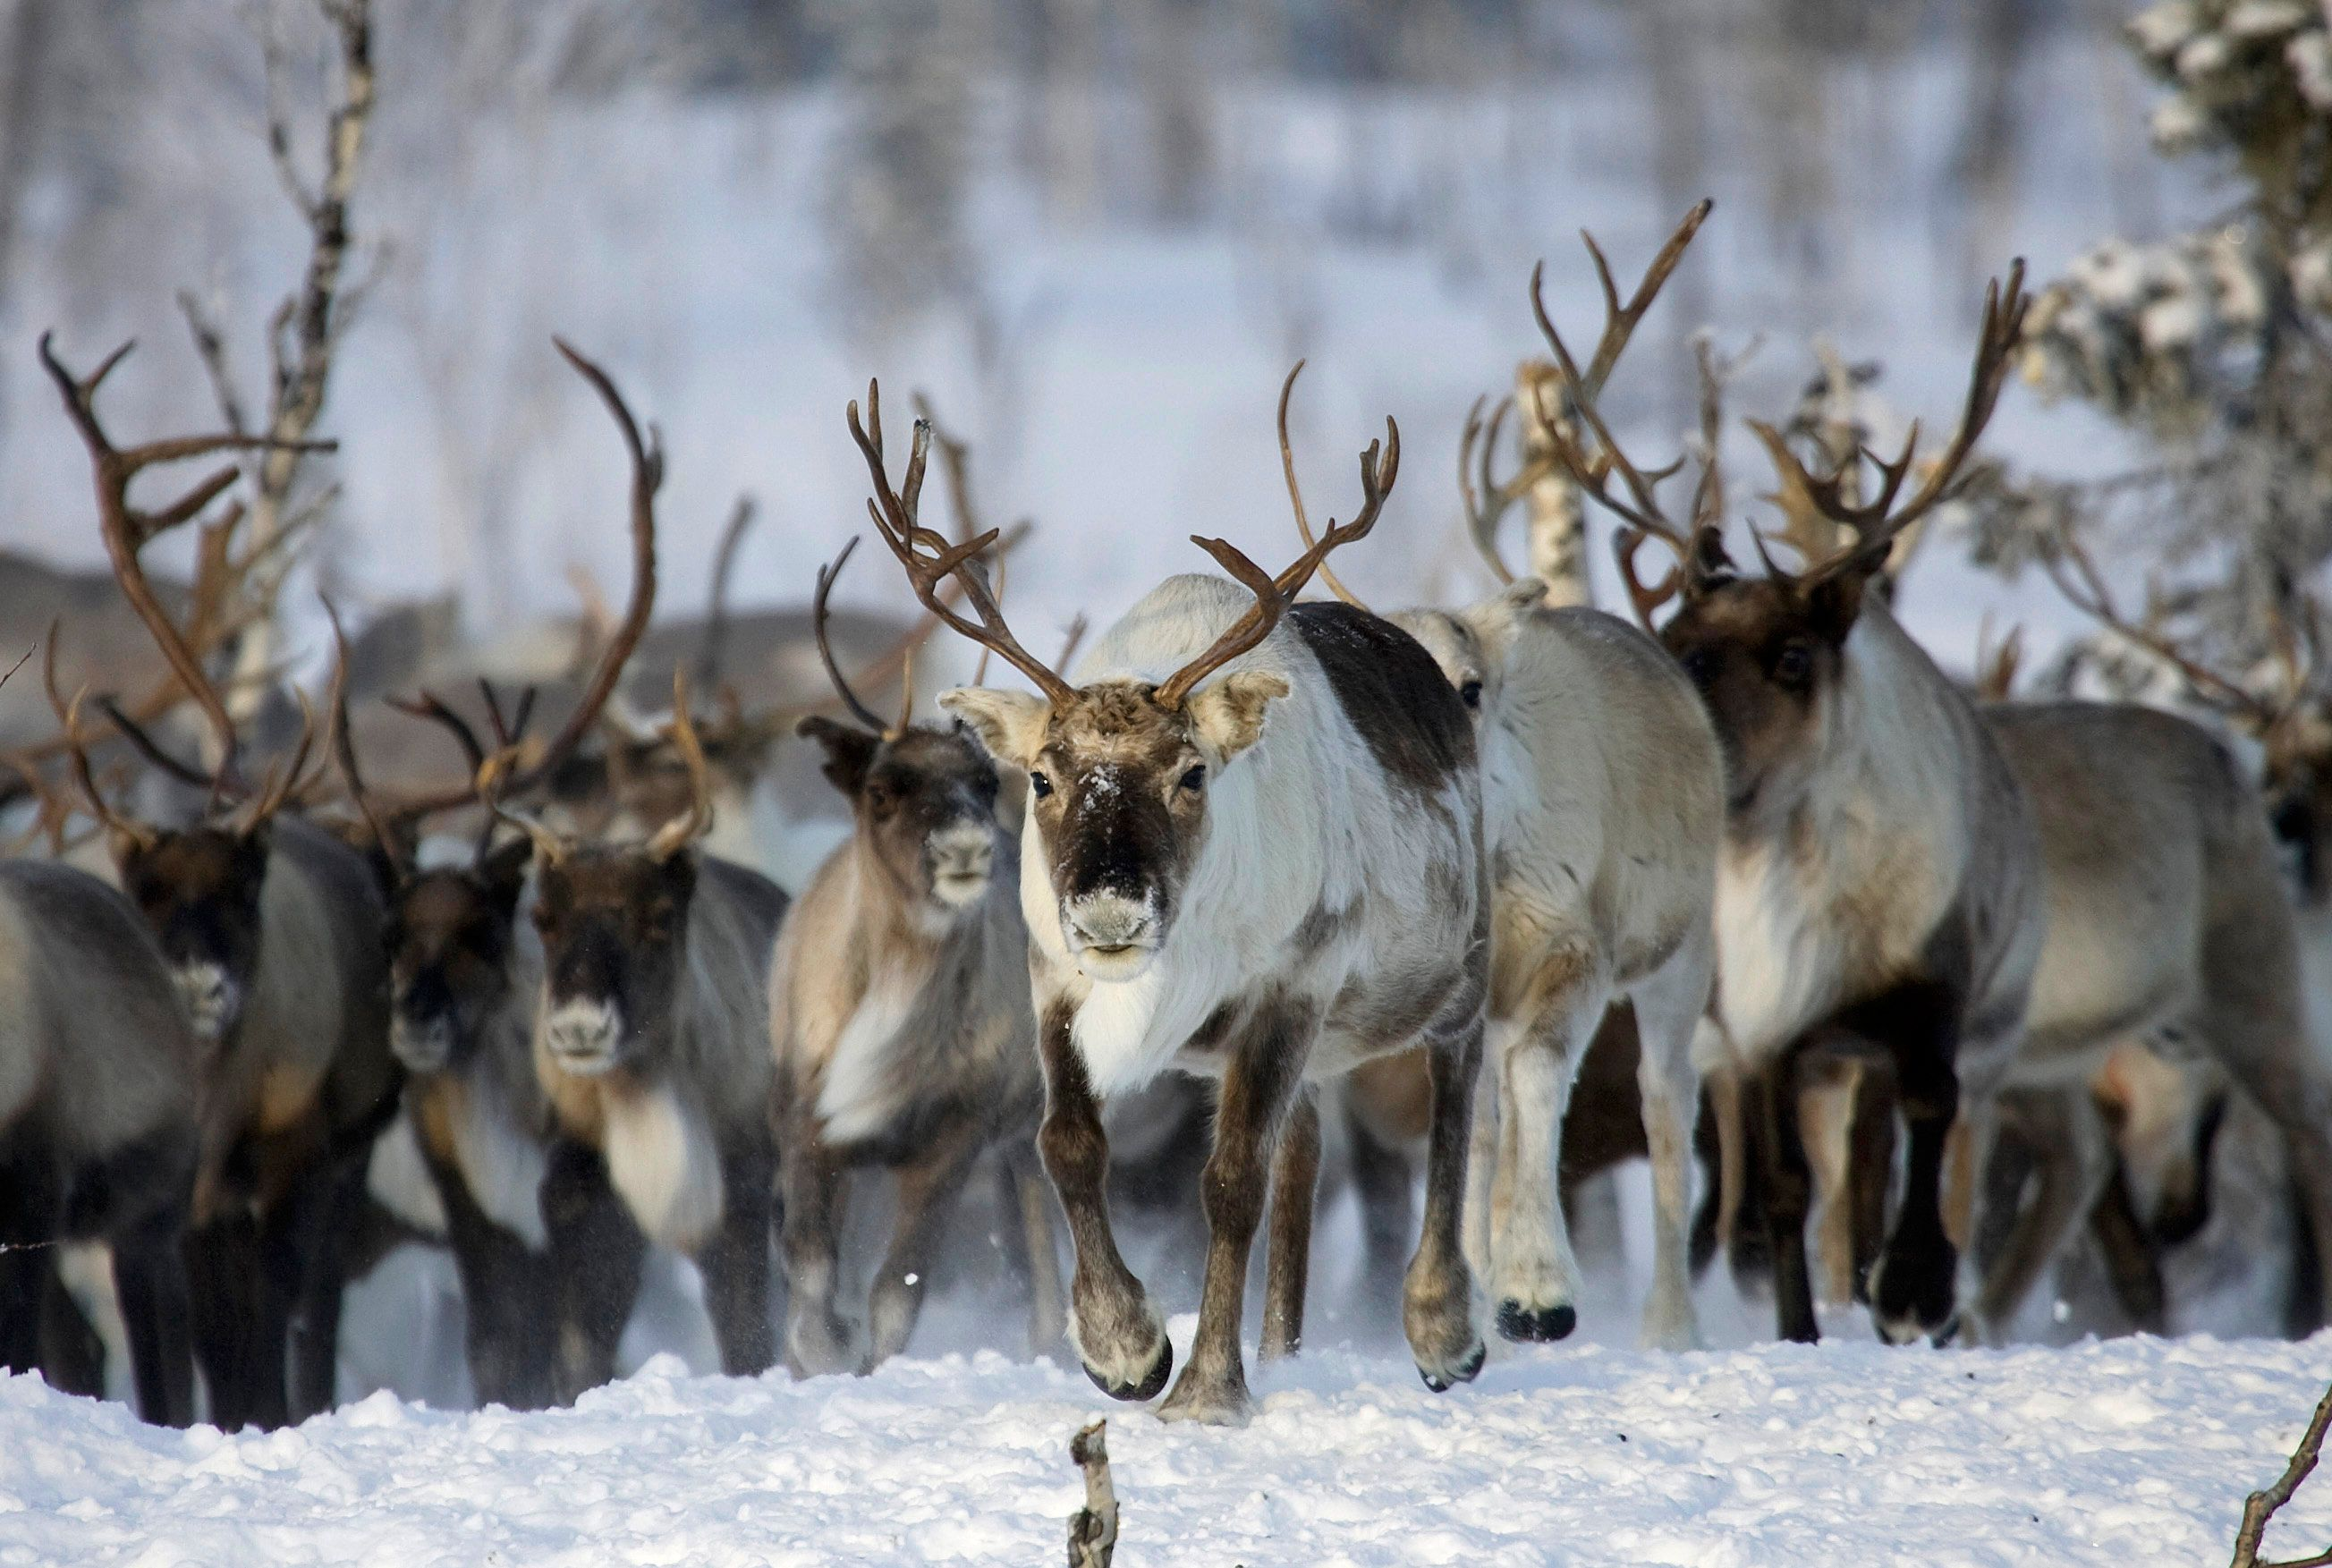 80000 Reindeer Have Starved To Death In Siberia Because Of Melting